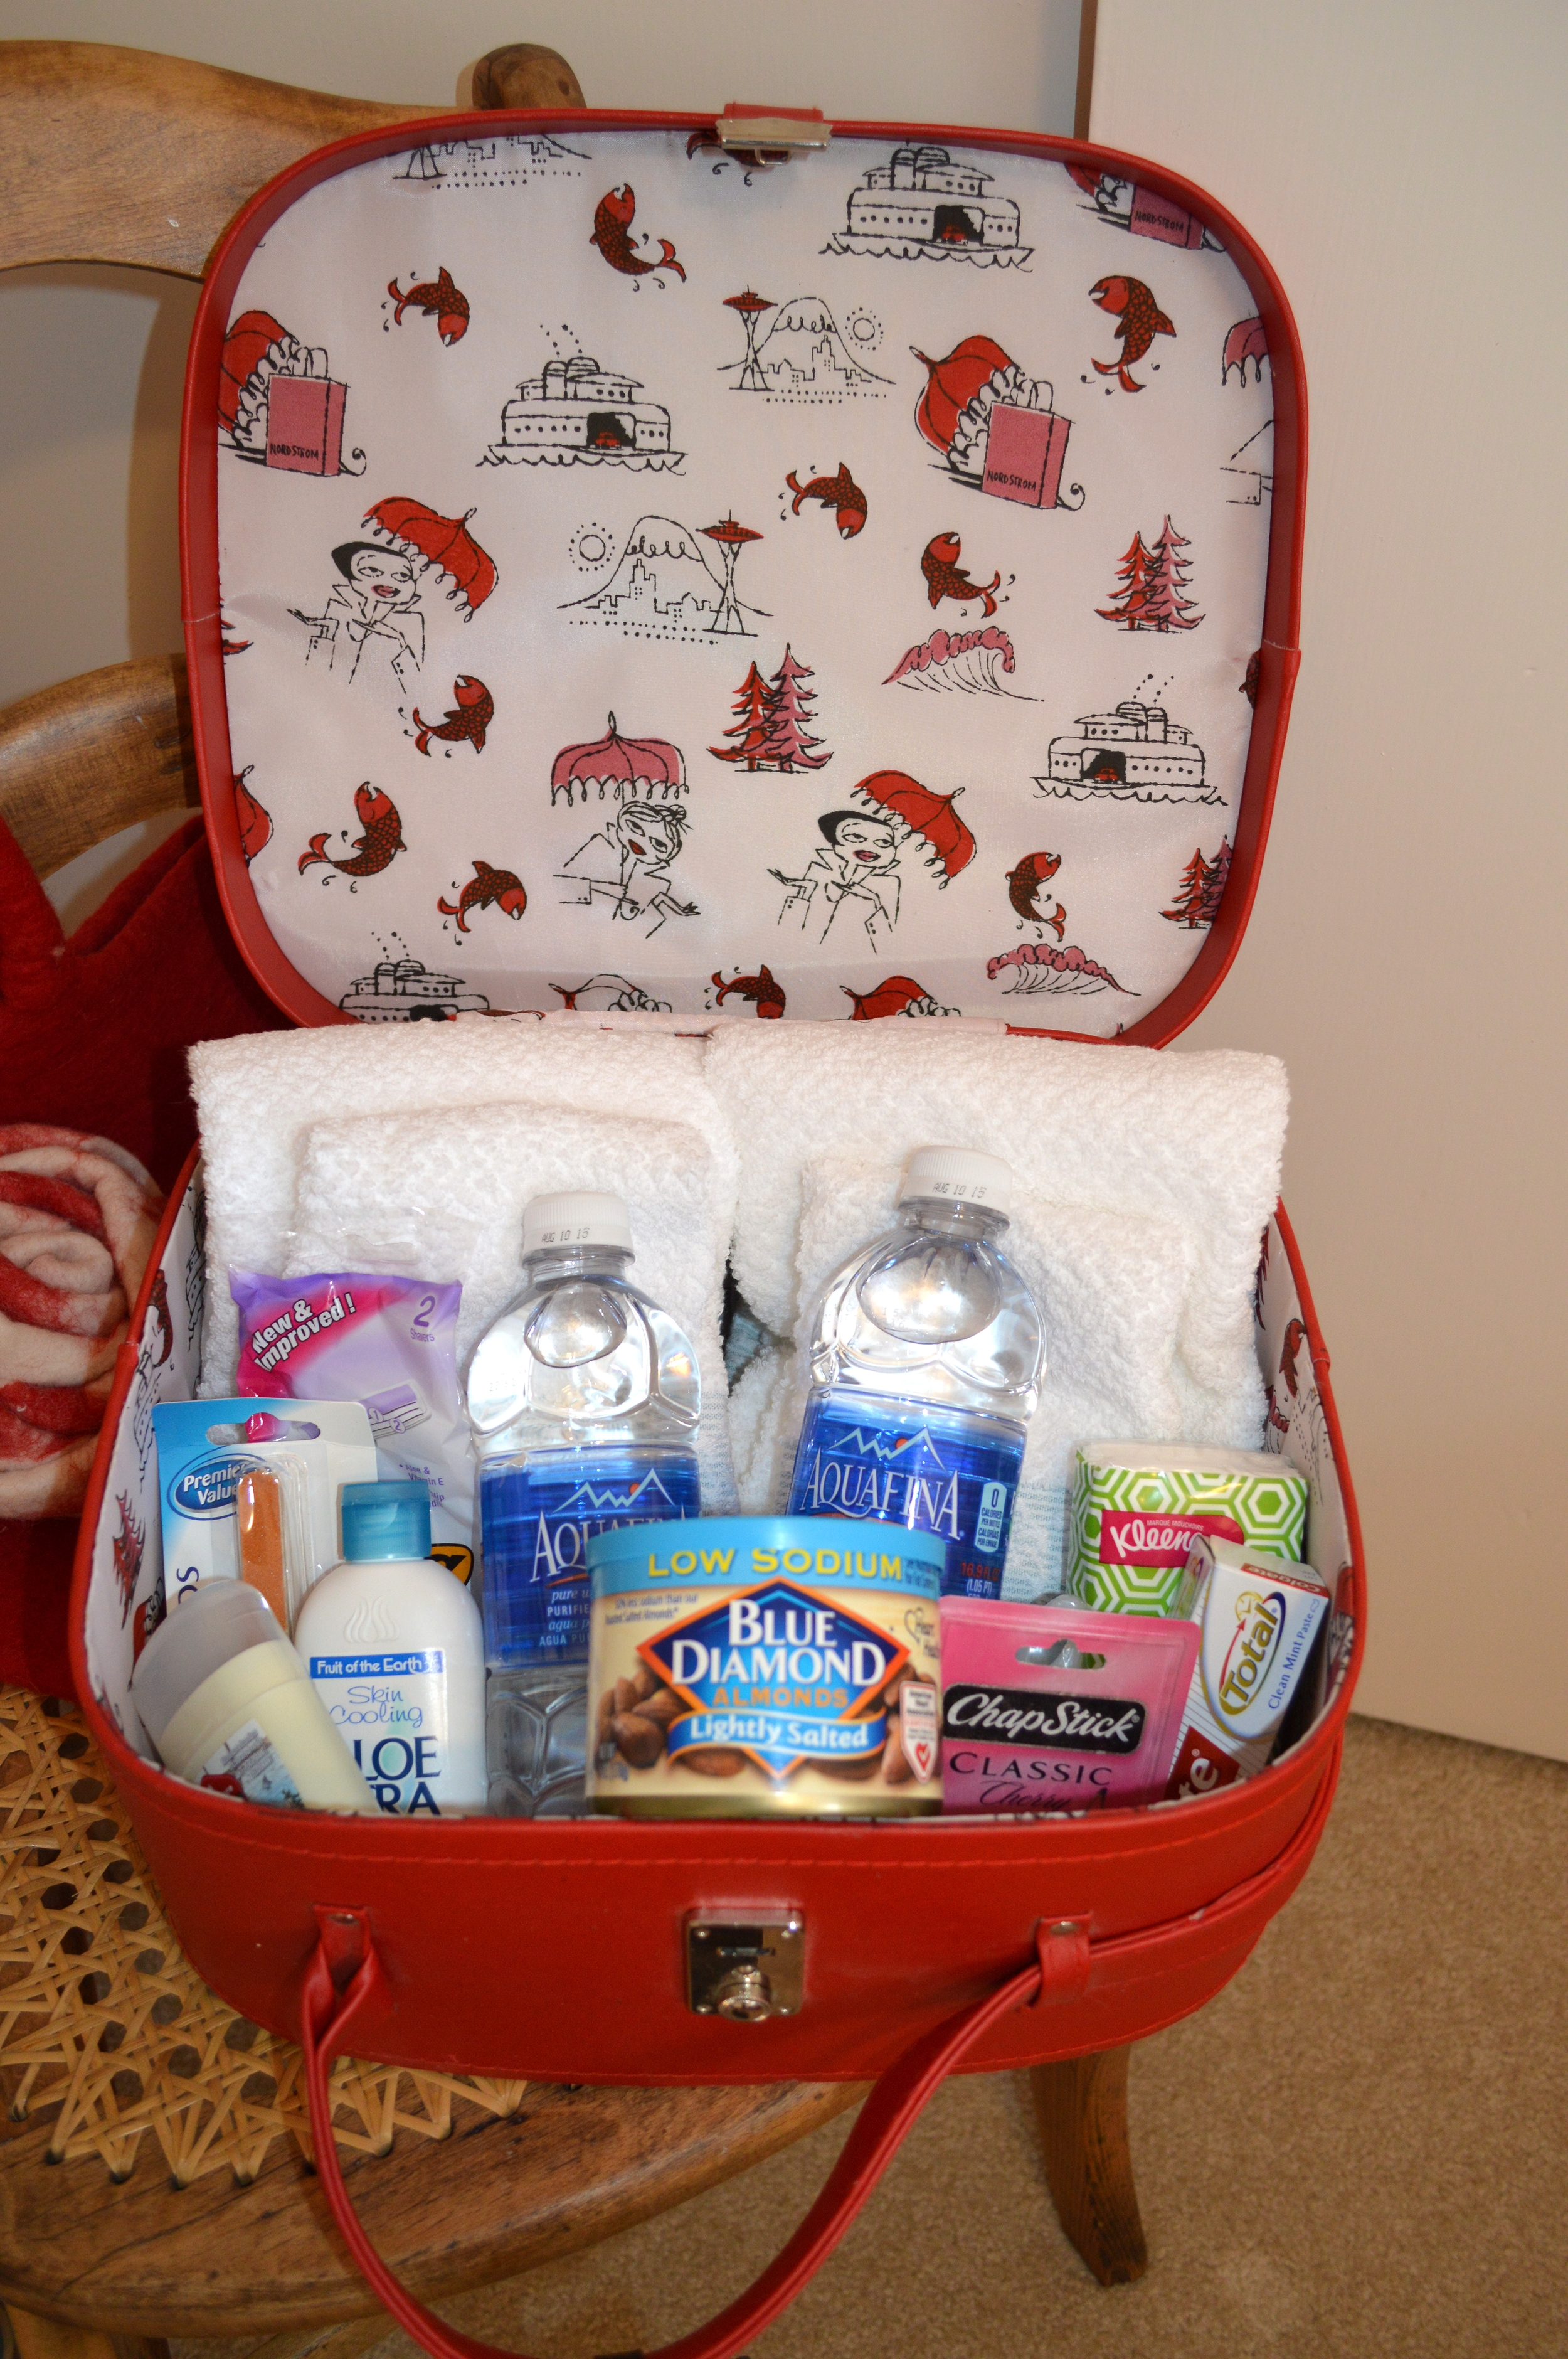 Cosmetic case with guest amenities...water, lotion, nail files, shaver, deodorant, toothpaste and brush, ChapStick, and almonds.